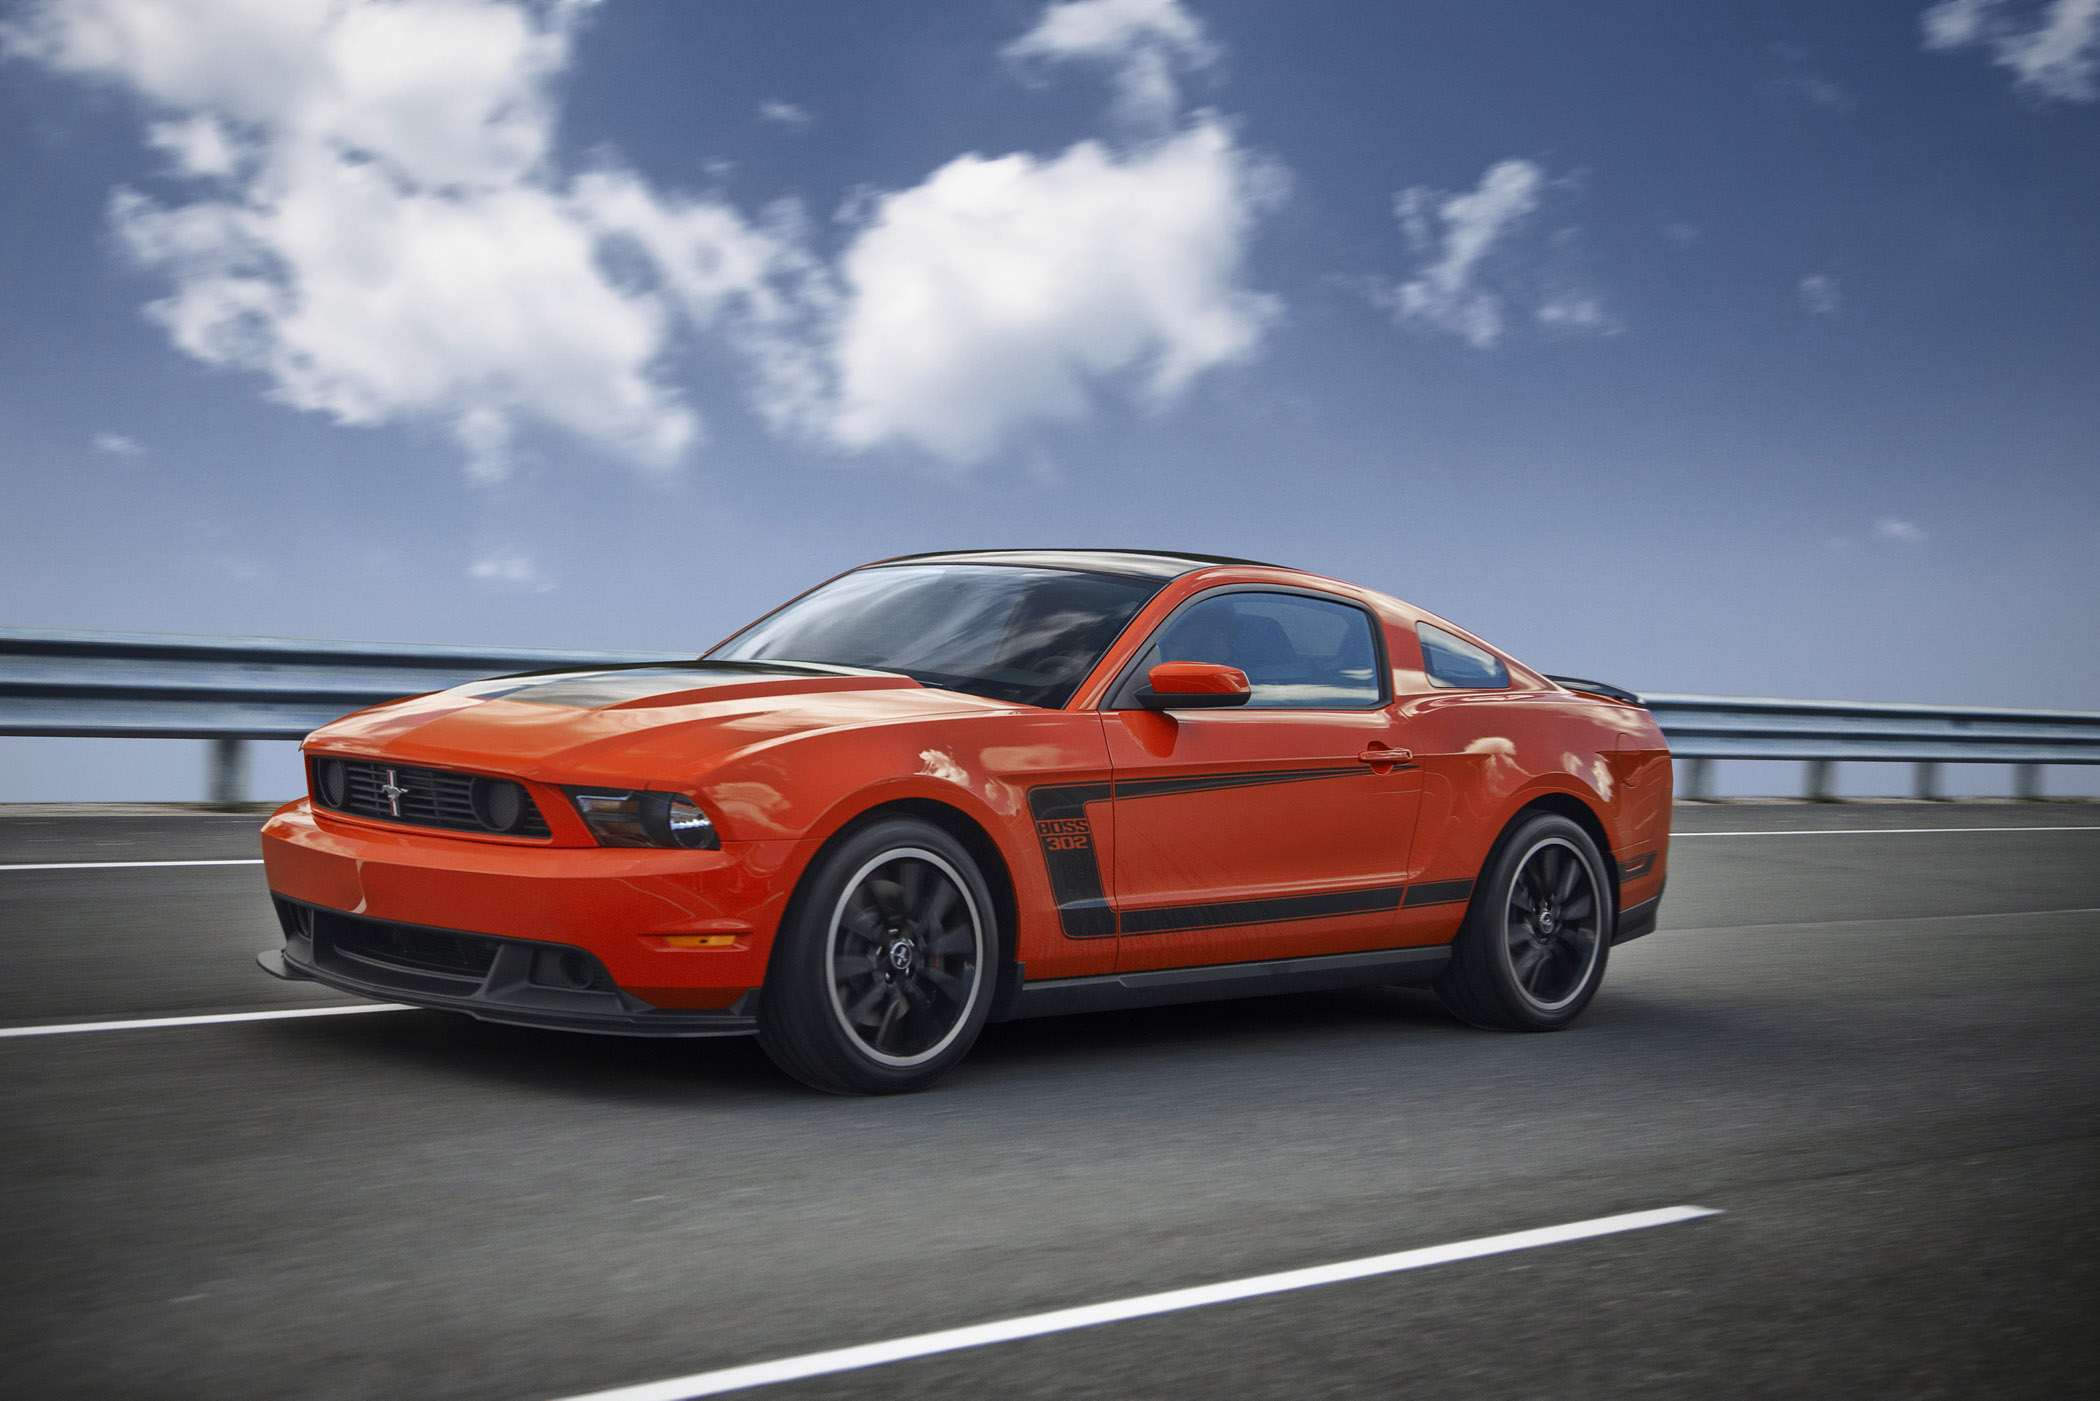 ford mustang boss 302 the legend returns for 2012 new on wheels groovecar. Black Bedroom Furniture Sets. Home Design Ideas